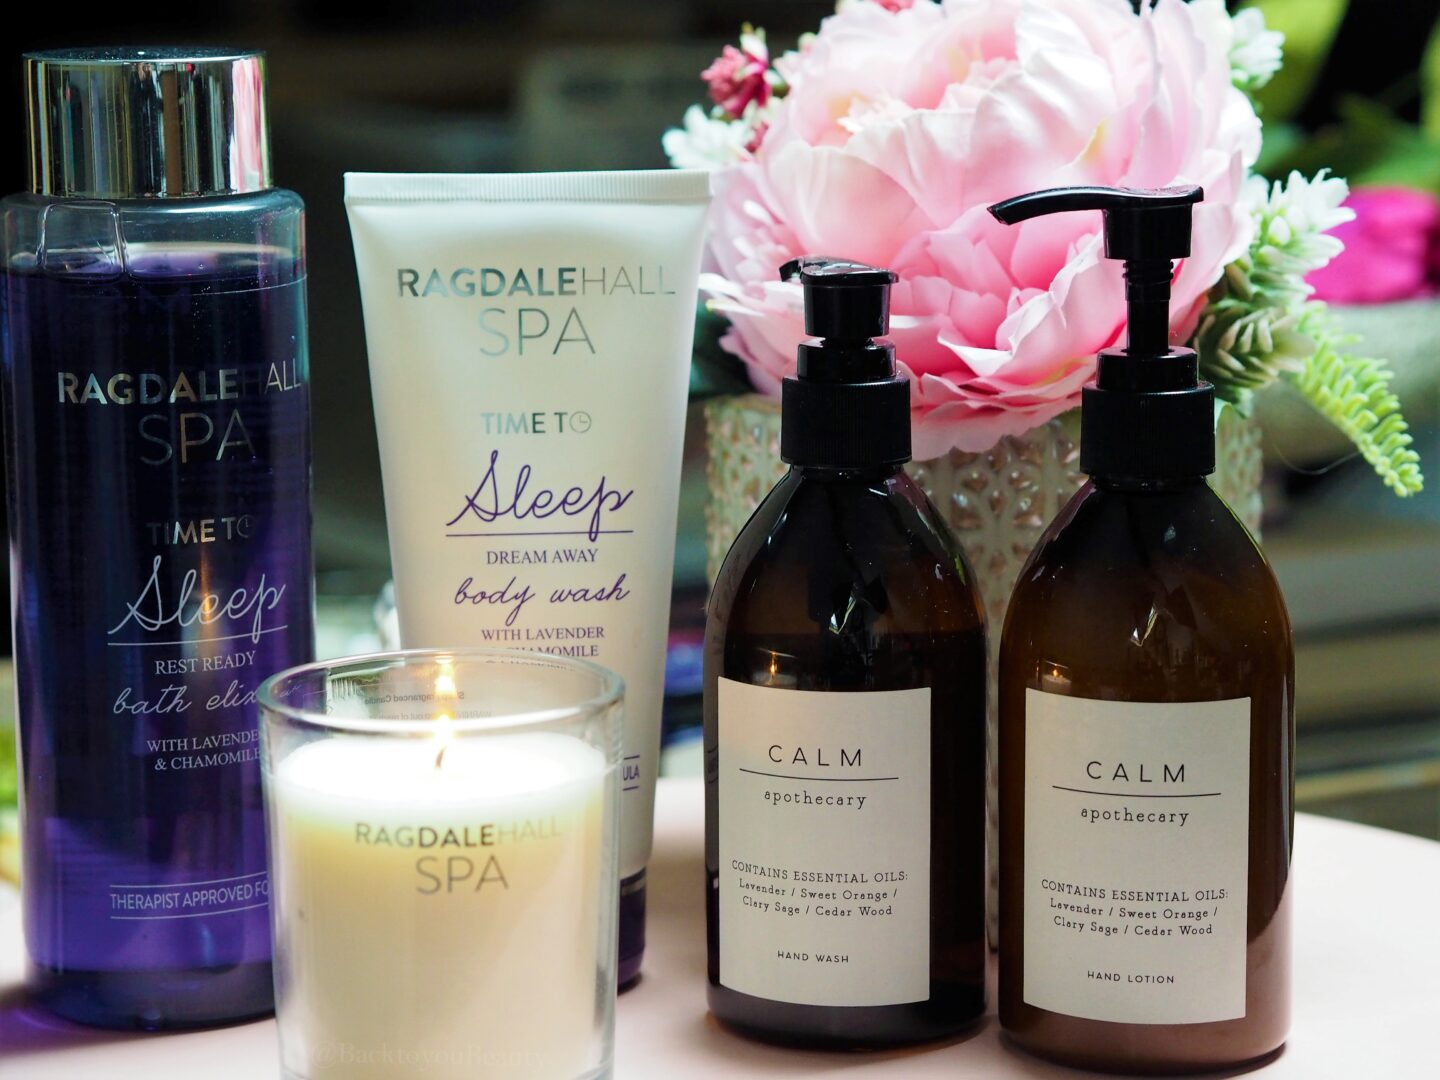 m&S sleep and calm products